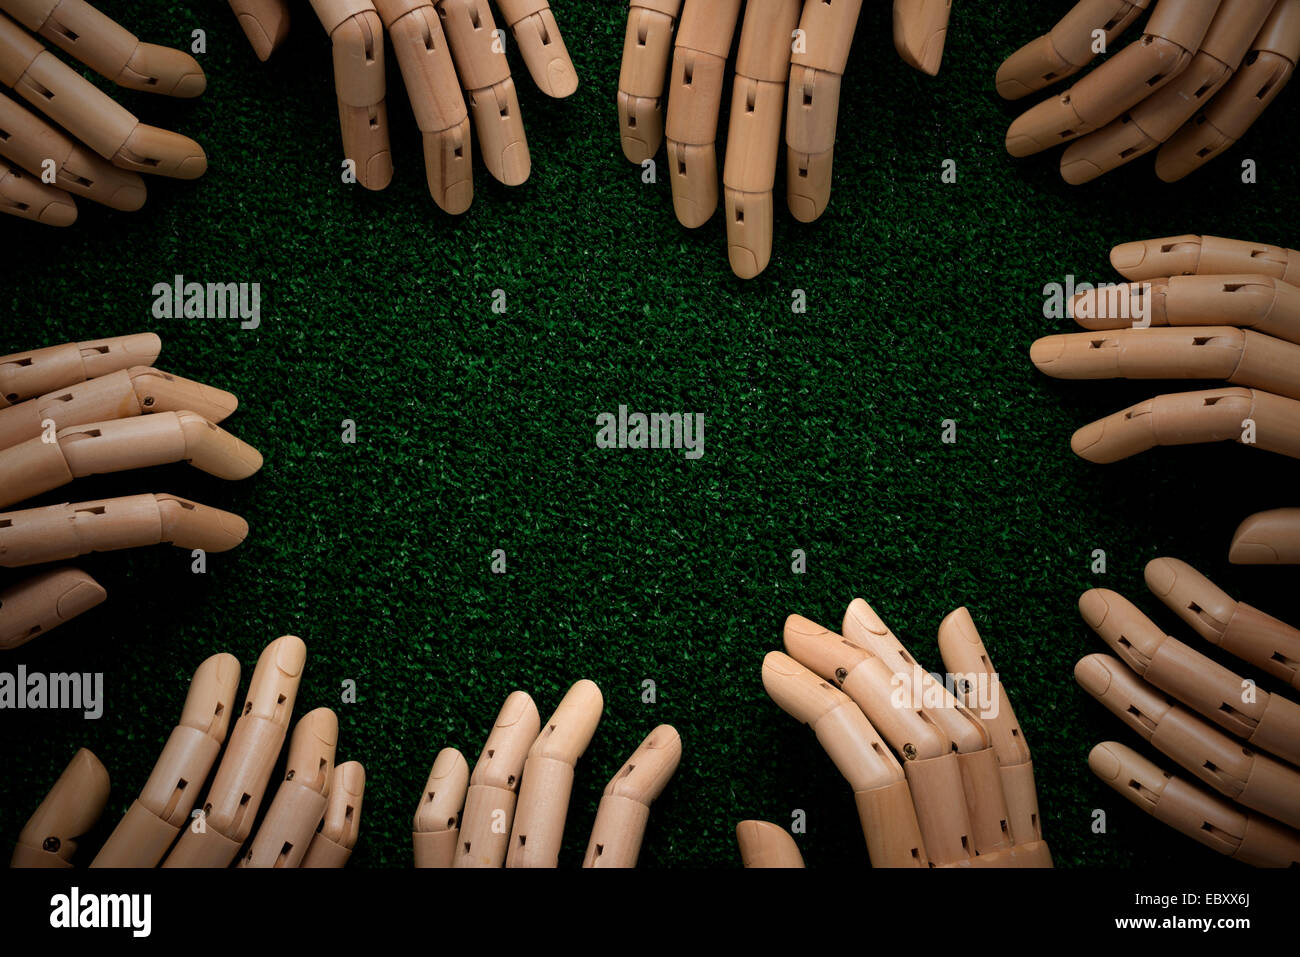 Wooden hands in seance - Stock Image